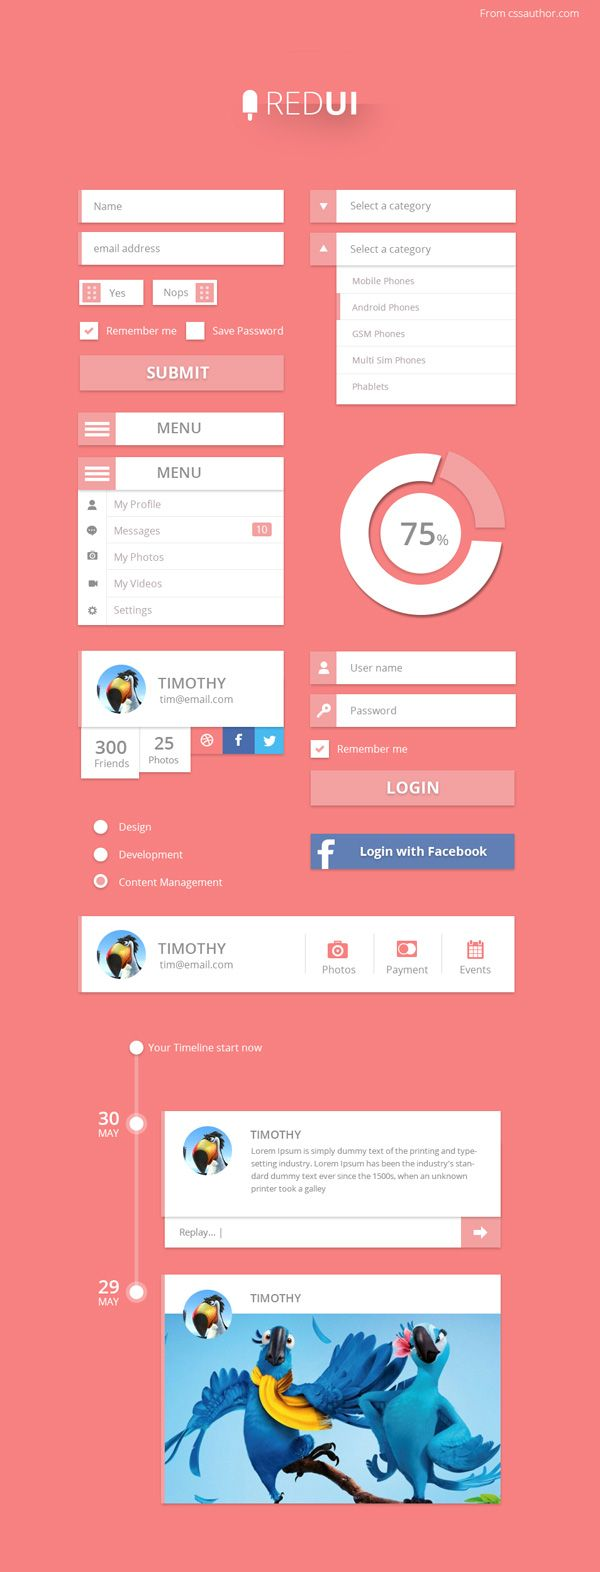 New free website graphics: RED UI – User Interface Design Kit PSD